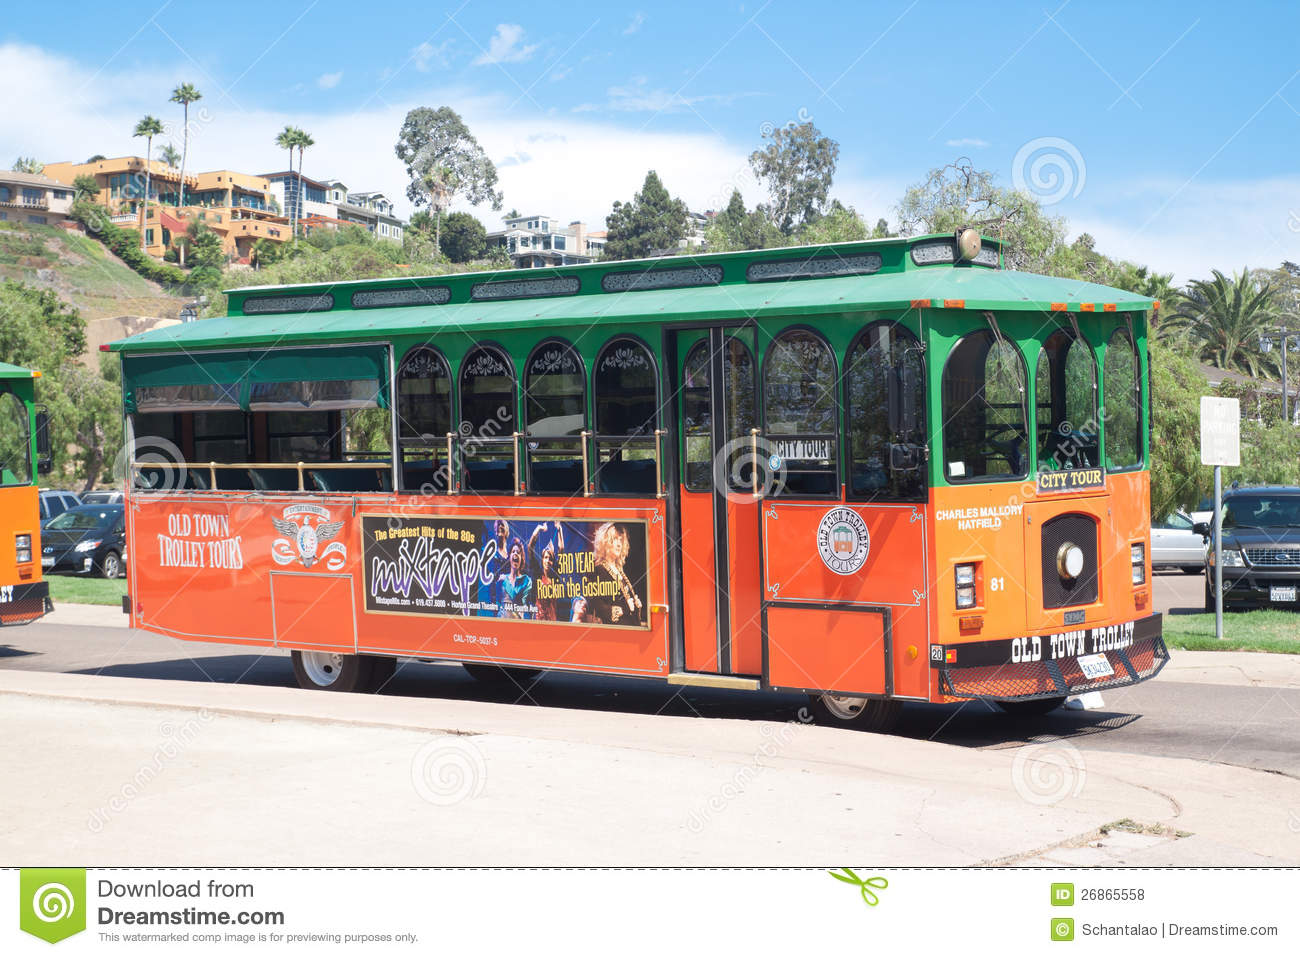 Trolley tours in old town San Diego, California